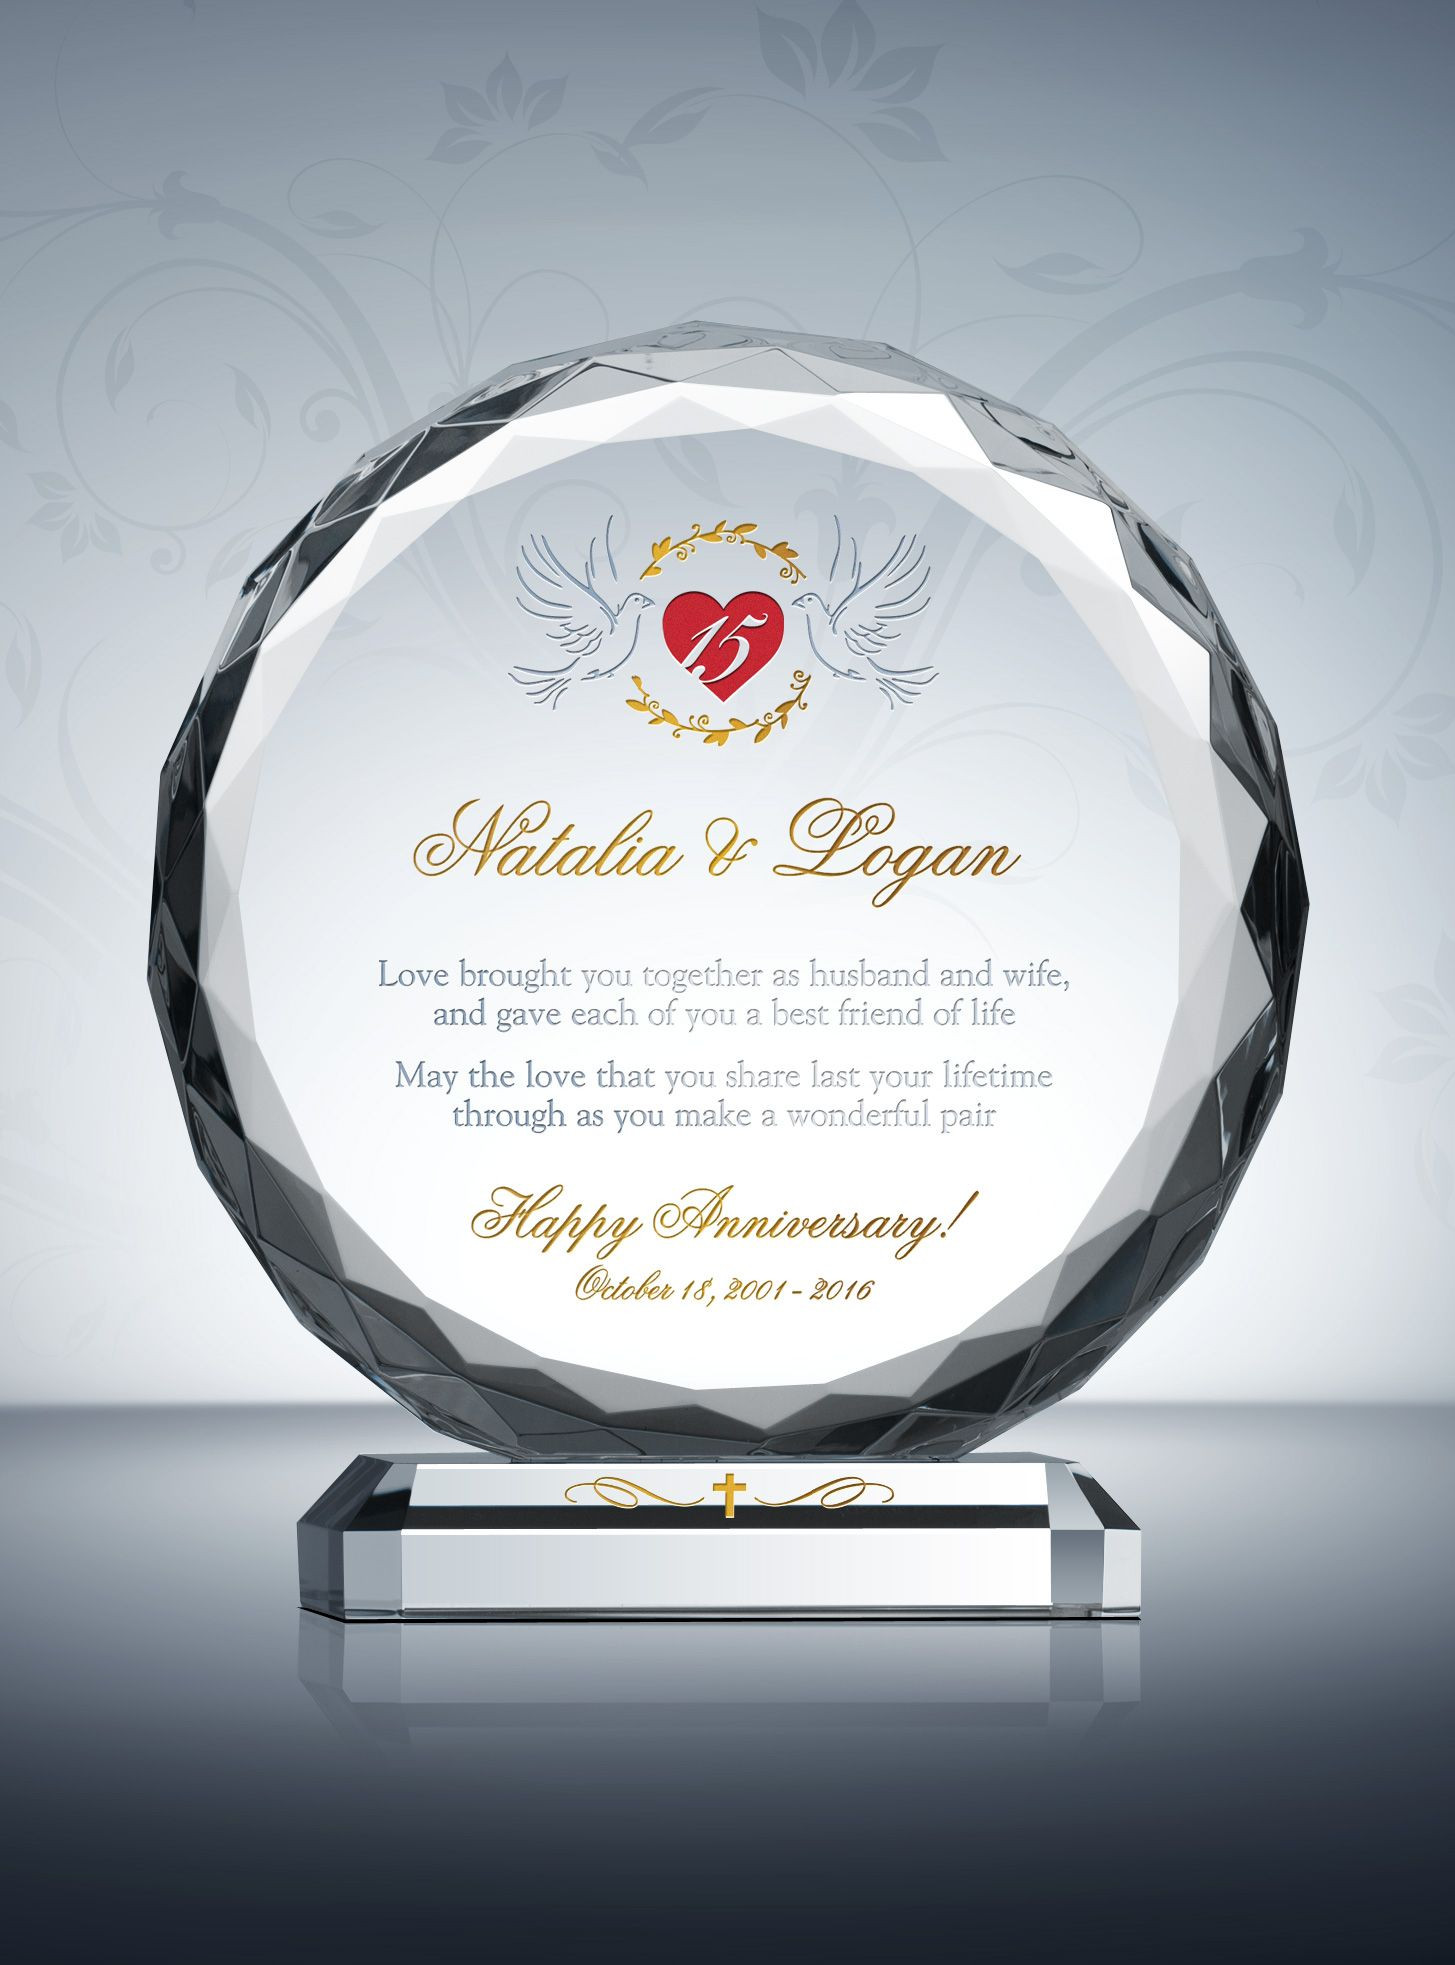 Crystal Anniversary Gift Ideas  15th Crystal Wedding Anniversary Gifts